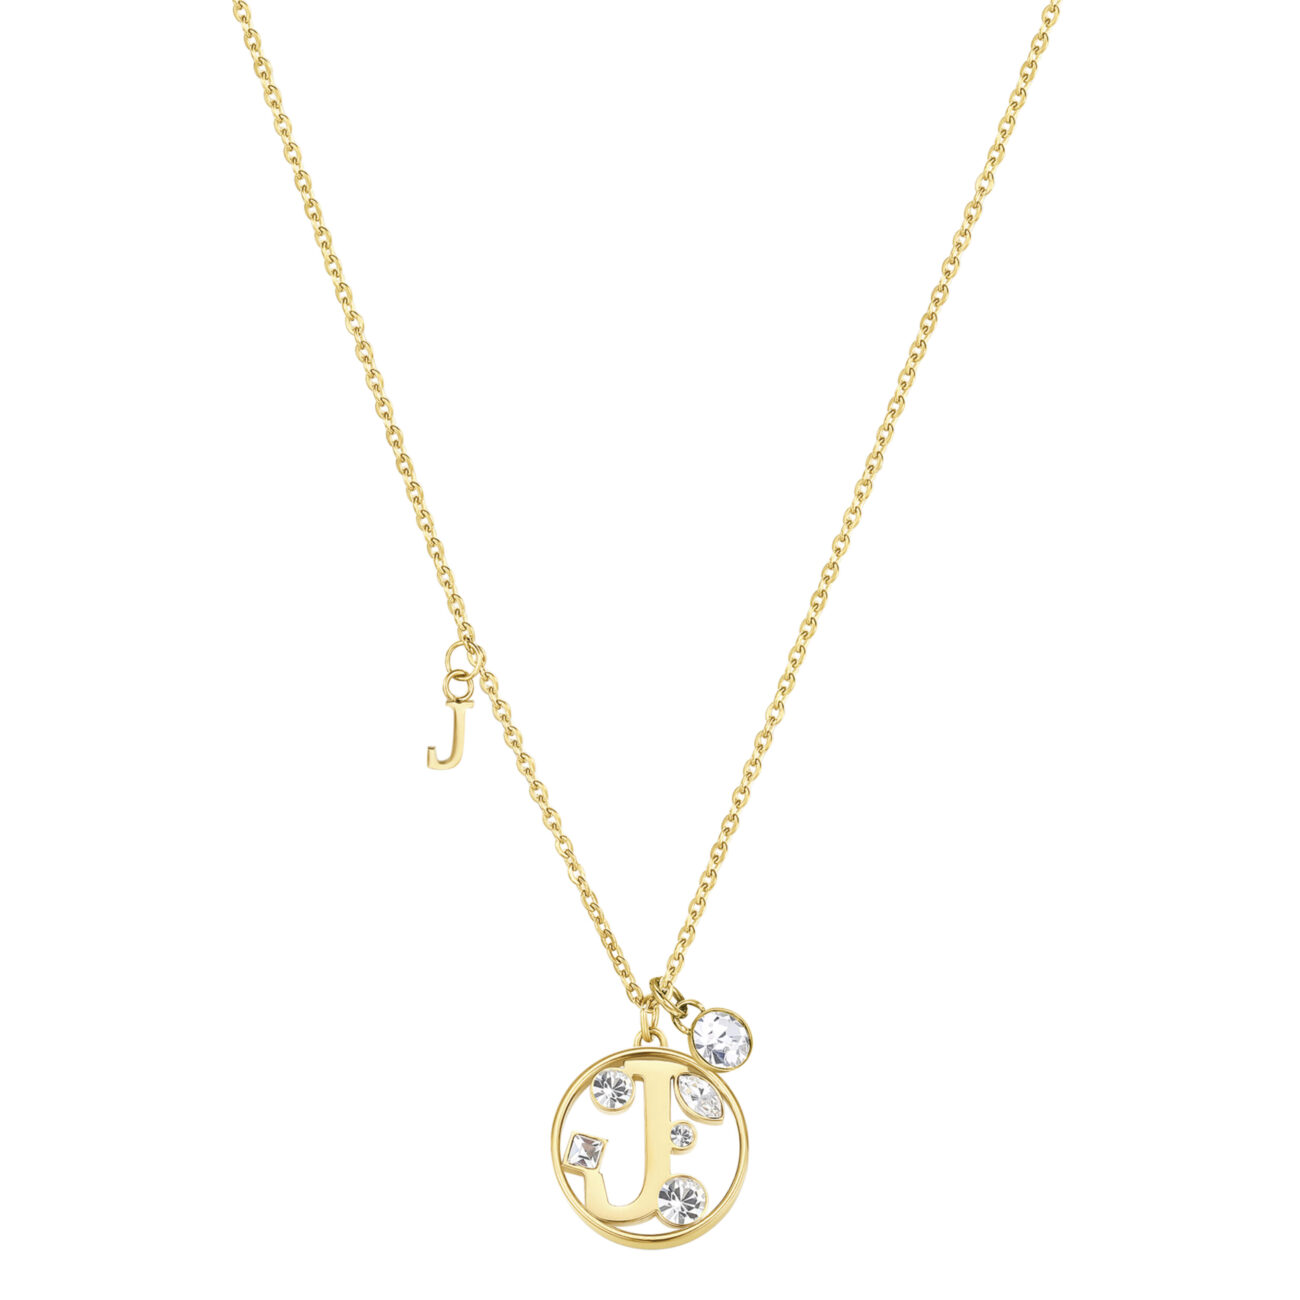 LETTER J: AMBITION, WILLPOWER, SUCCESSThose whose name starts with the letter 'J' will have a very fulfilling life. Js are eager to win, succeed in what they do and often get rewards and make progress at work. They have extraordinary willpower and sense of initiative.316L stainless steel necklace and gold finishes with letter and crystal crystals.